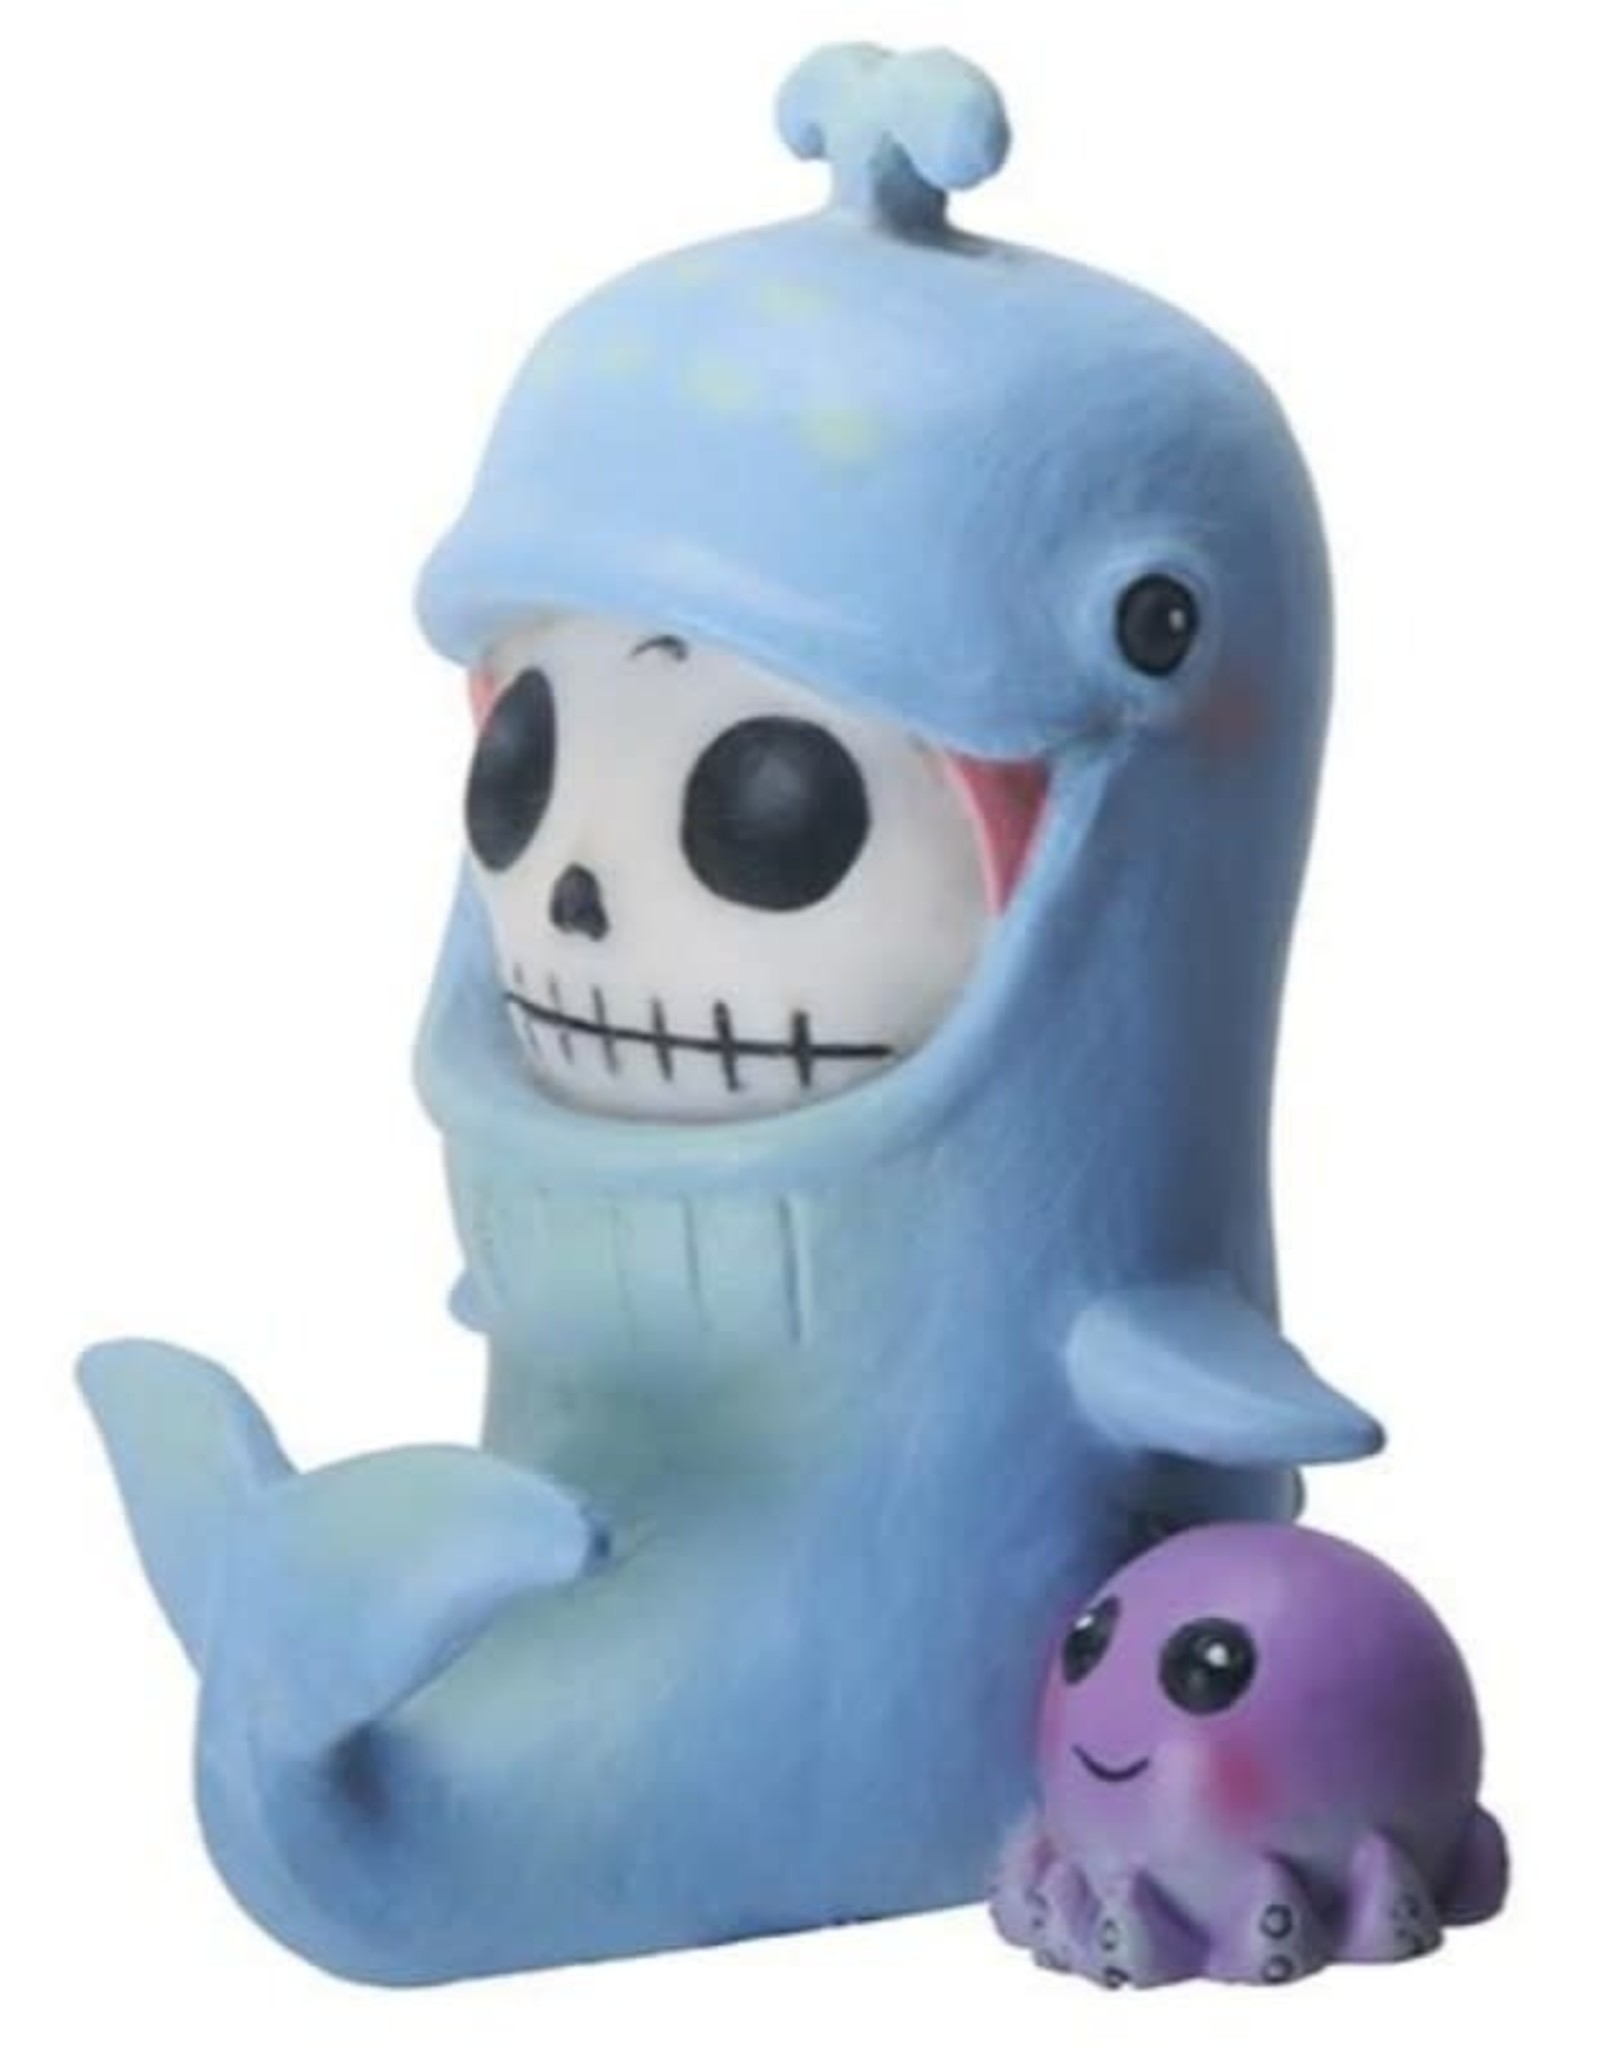 Furrybones Moby (Whale)